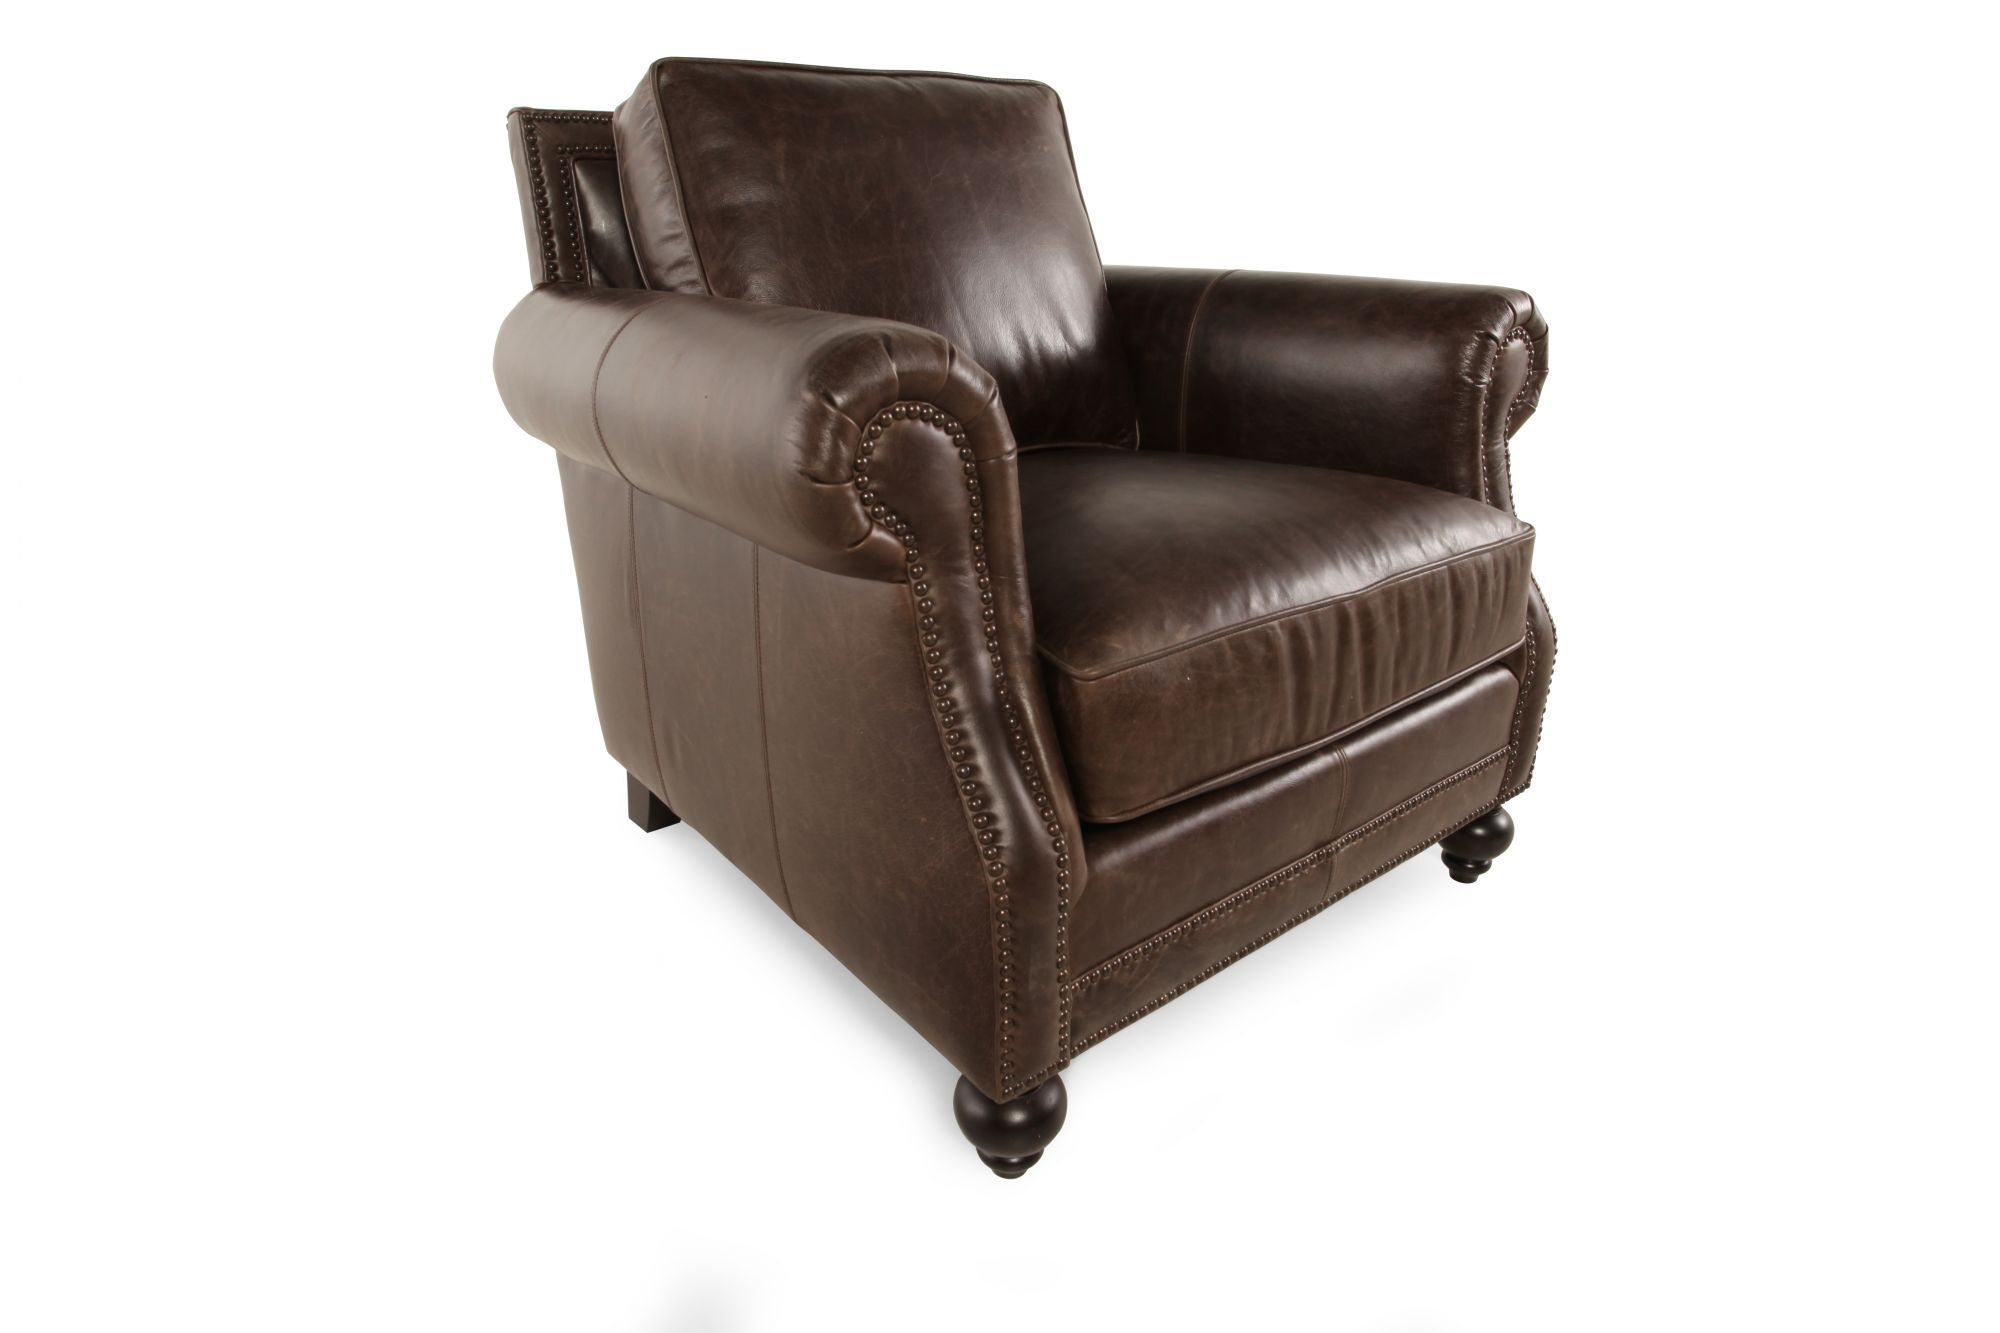 Bernhardt Leather Chair Bernhardt Brae Leather Chair Mathis Brothers Furniture